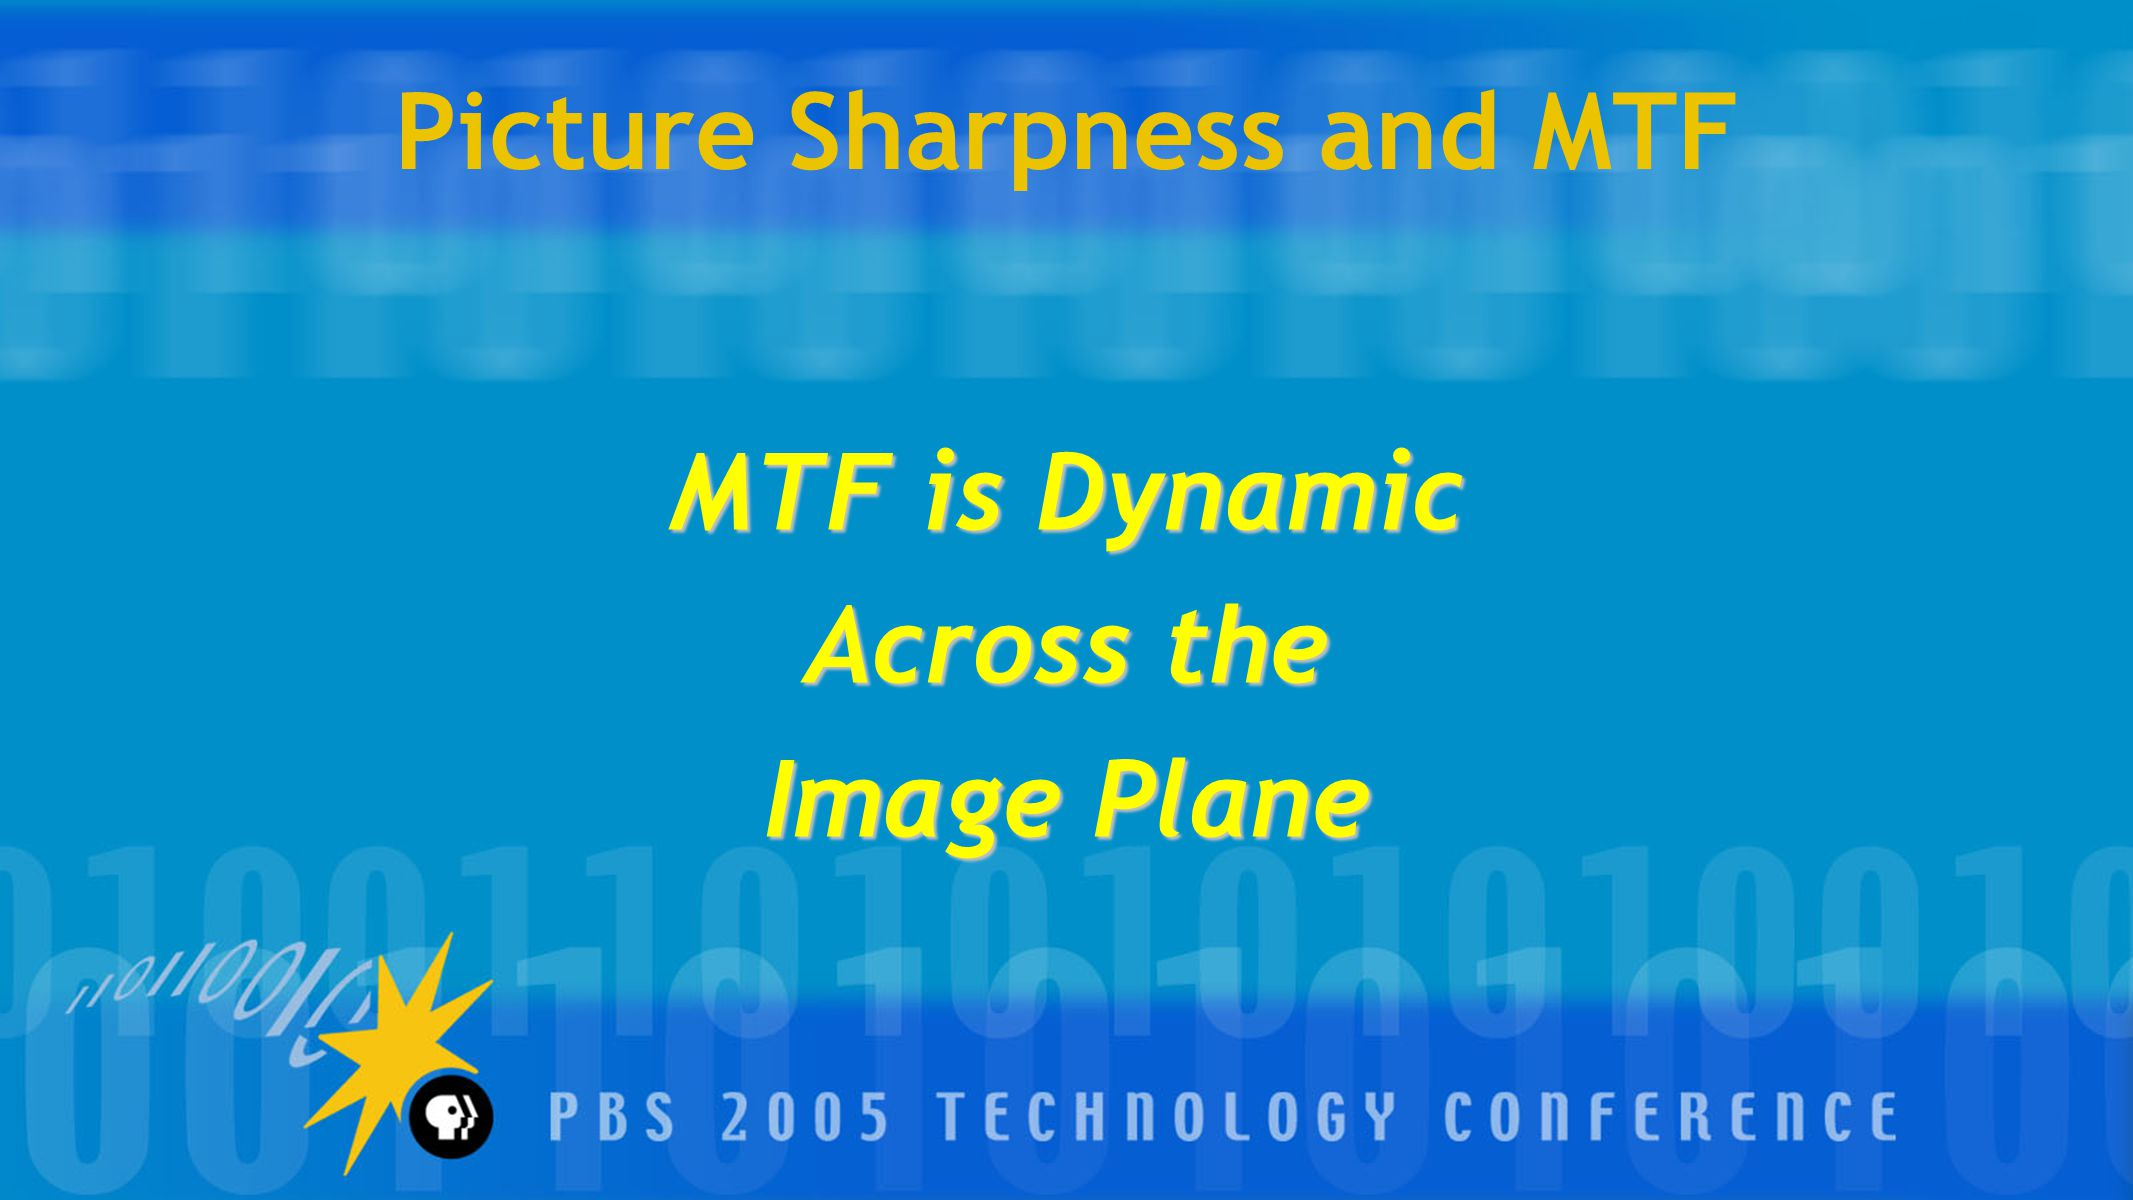 Picture Sharpness and MTF MTF is Dynamic Across the Image Plane